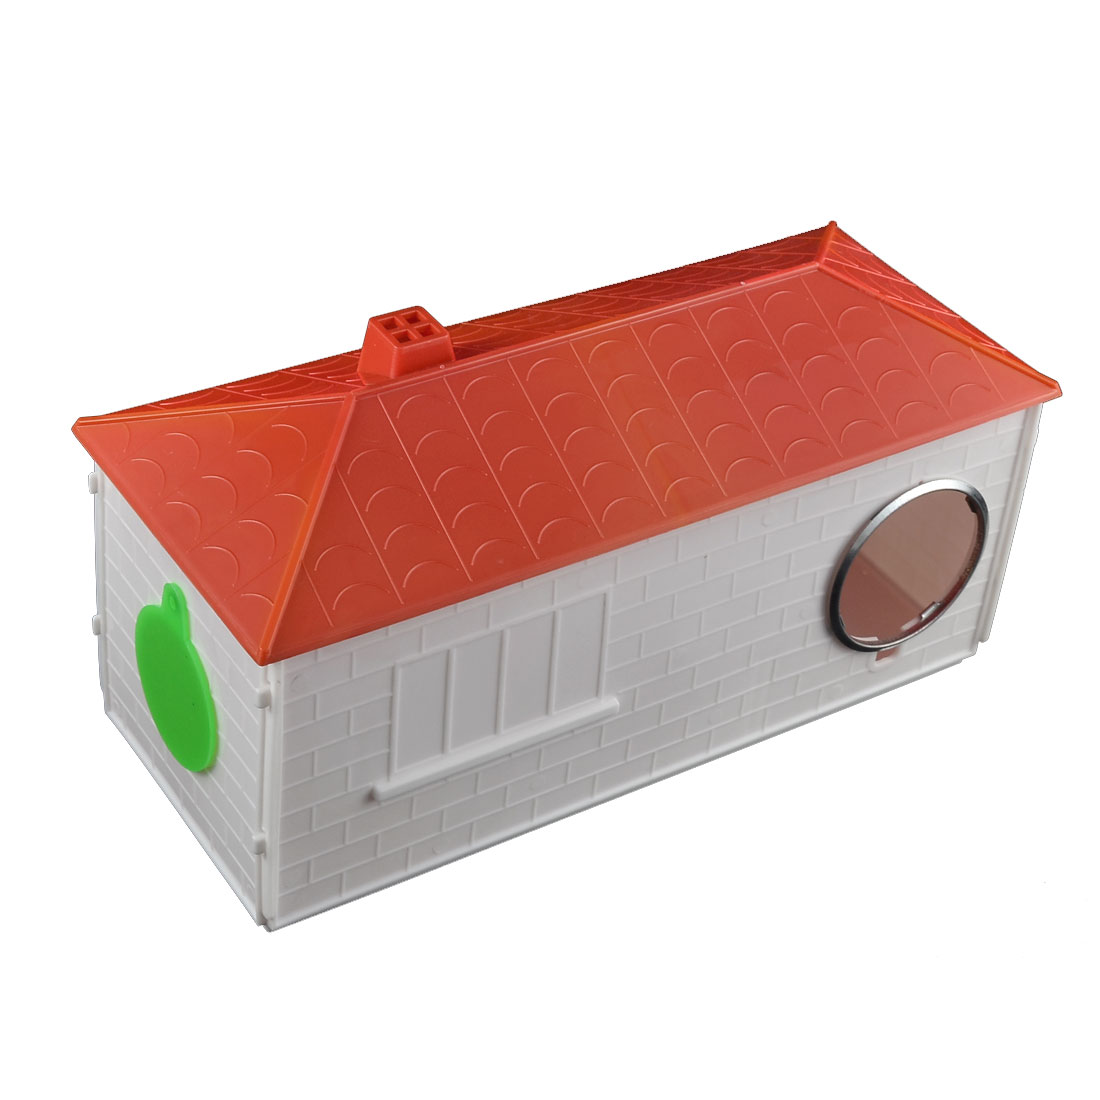 Unique Bargains Plastic Cabin Shaped Portable Comfortable Pet Hamster House Red White - image 2 of 2